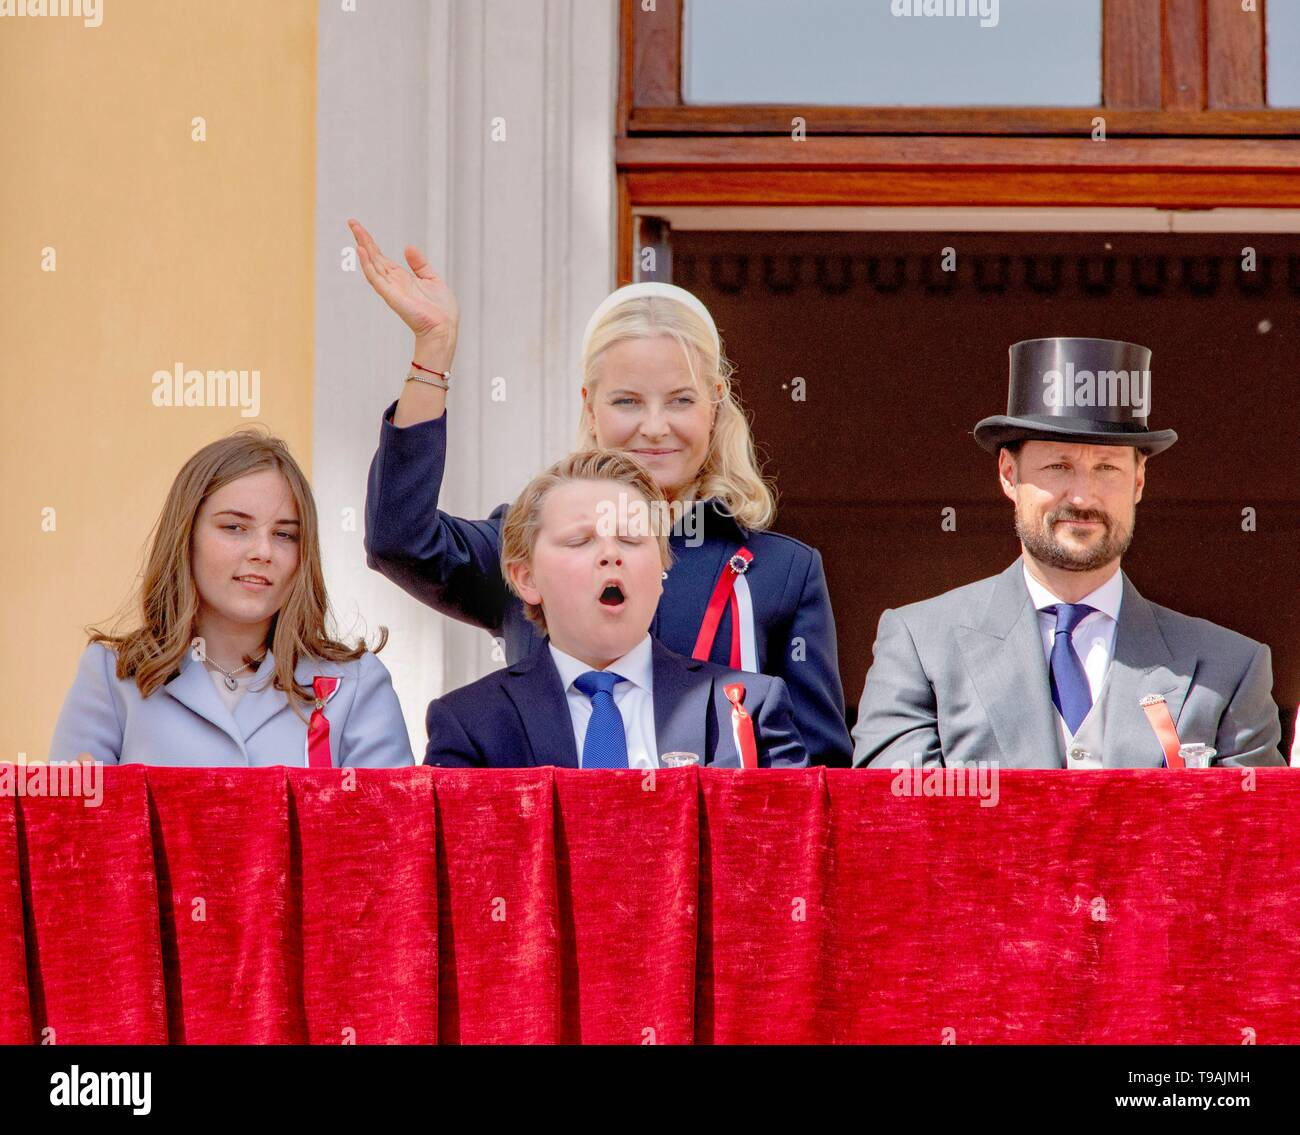 Oslo Norway 17th May 2019 National Day Of Norway 17 05 2019 Norwegian Royal Family At The Balcony Of The Royal Palace In Oslo Greeting Thousands Of People Walking Along The Palace As It